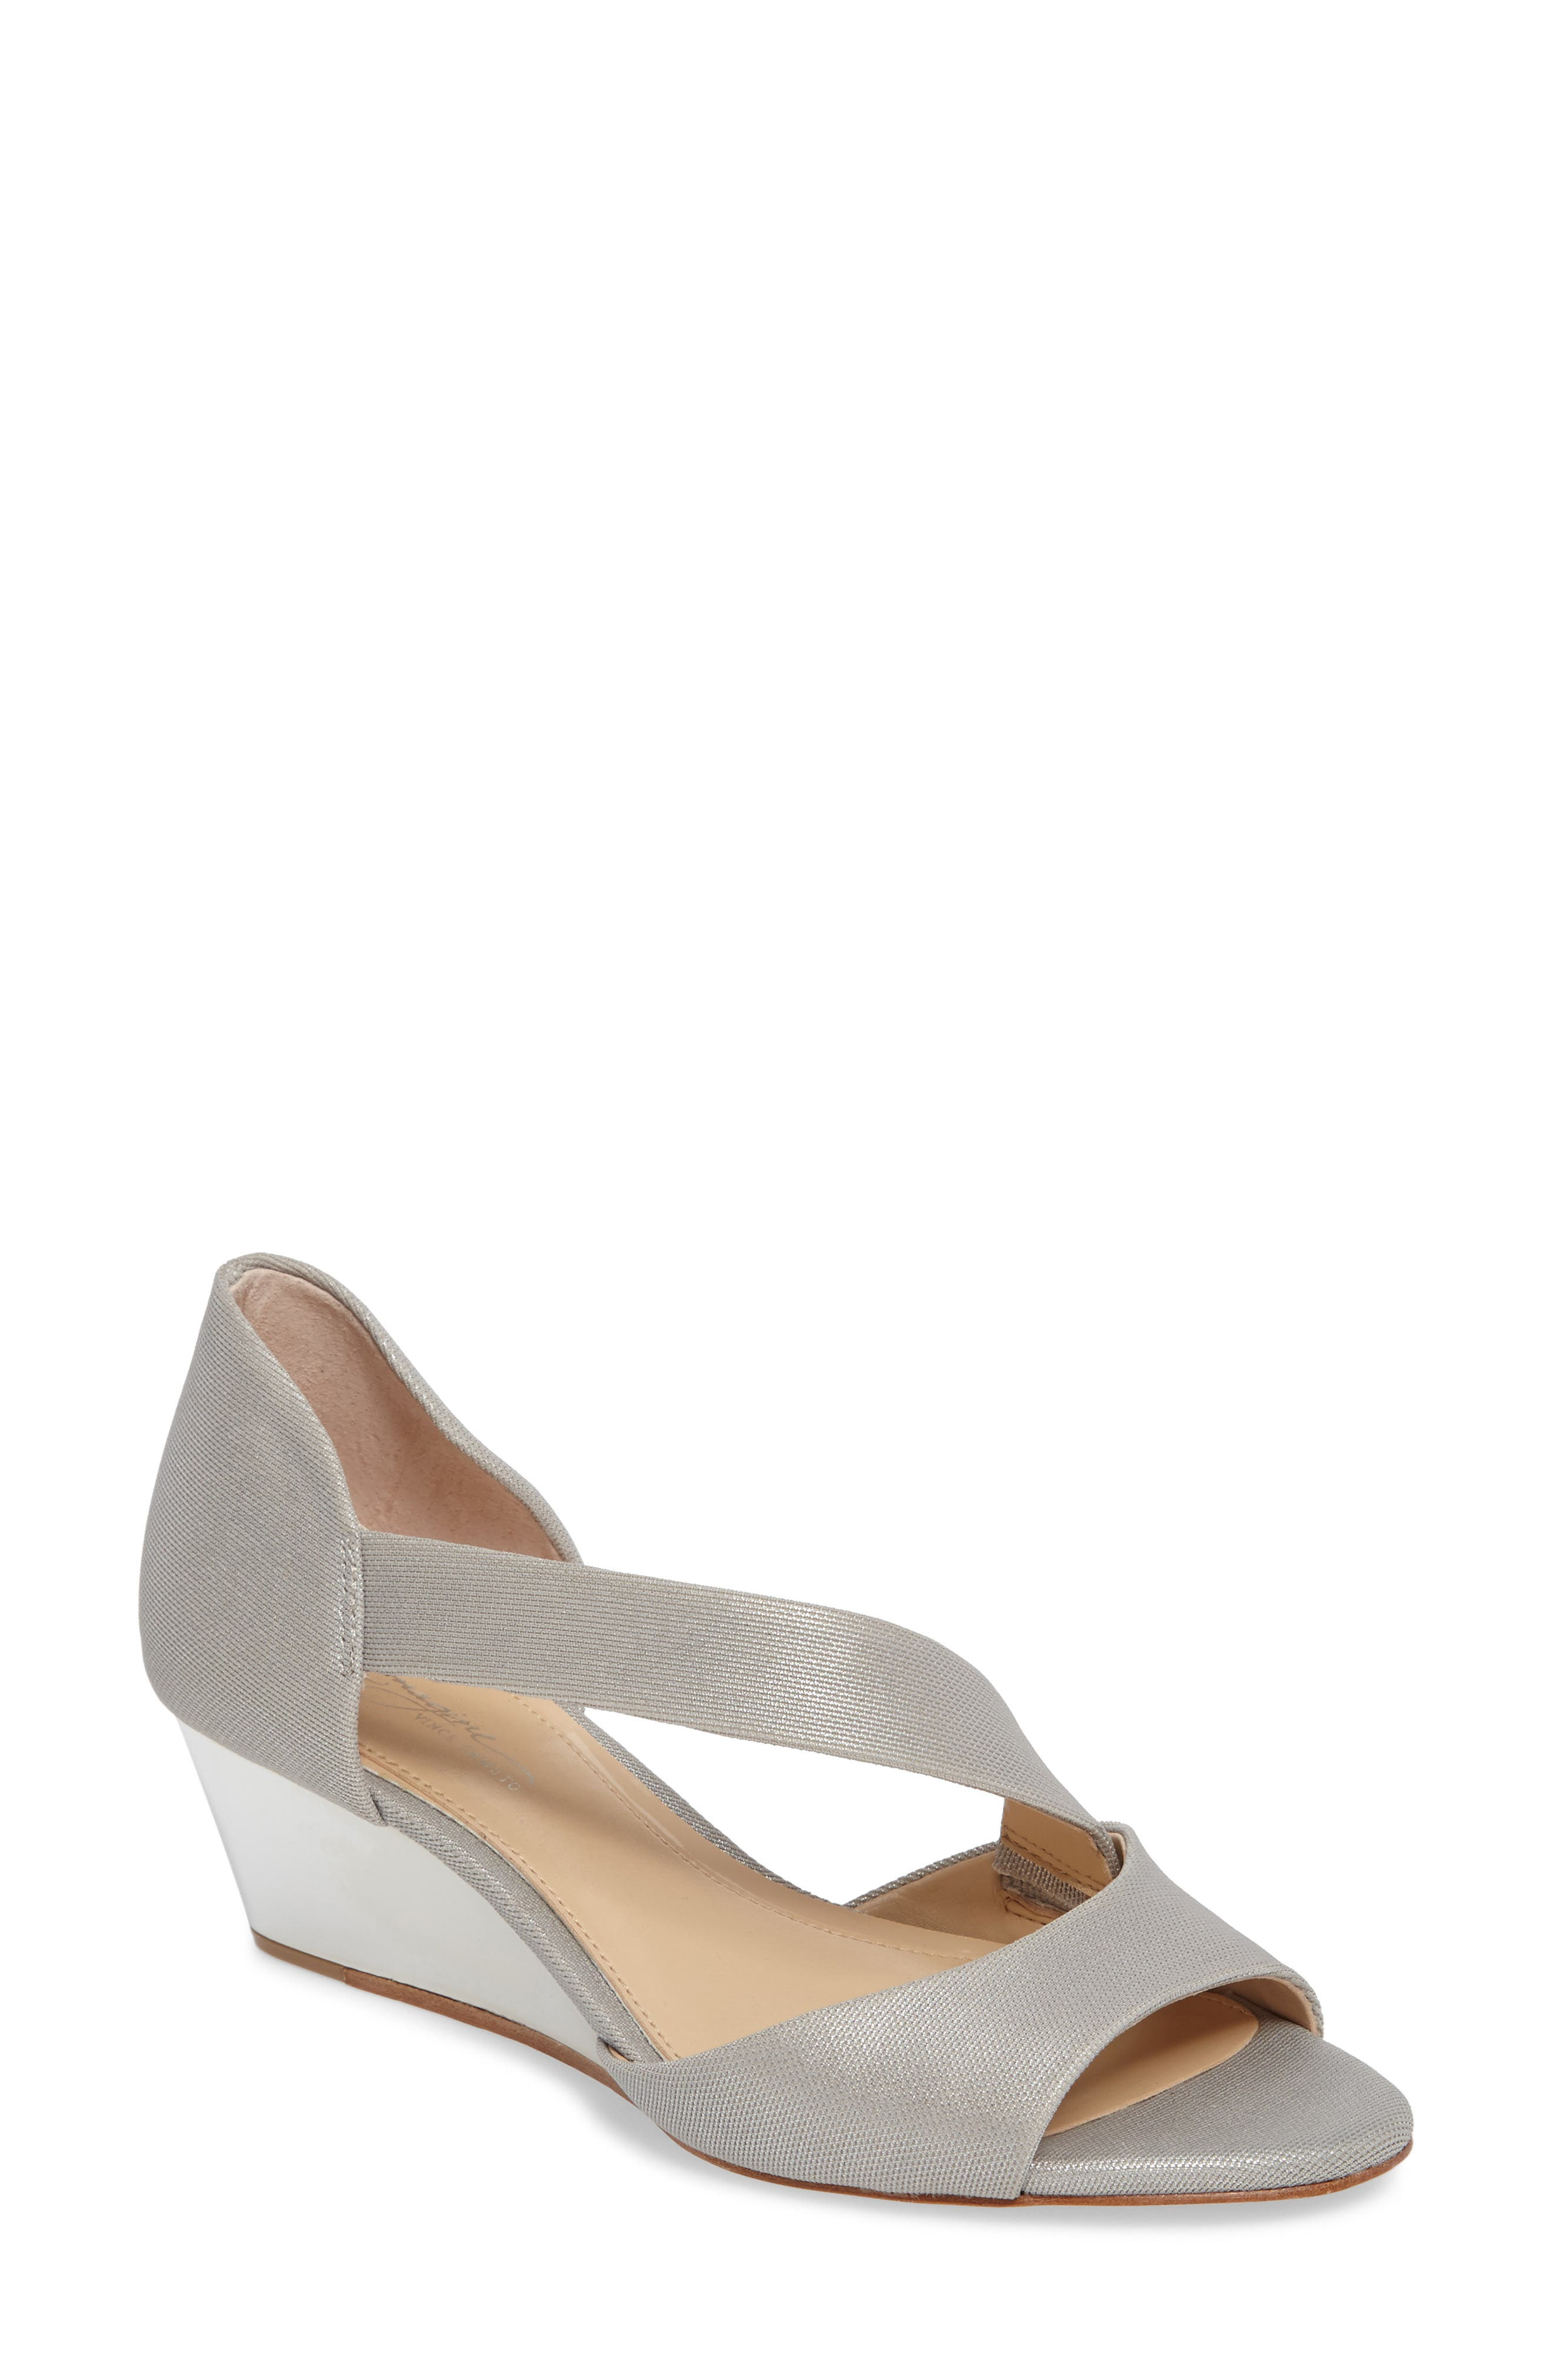 Alternate Image 1 Selected - Imagine by Vince Camuto Jefre Wedgee Sandal (Women)